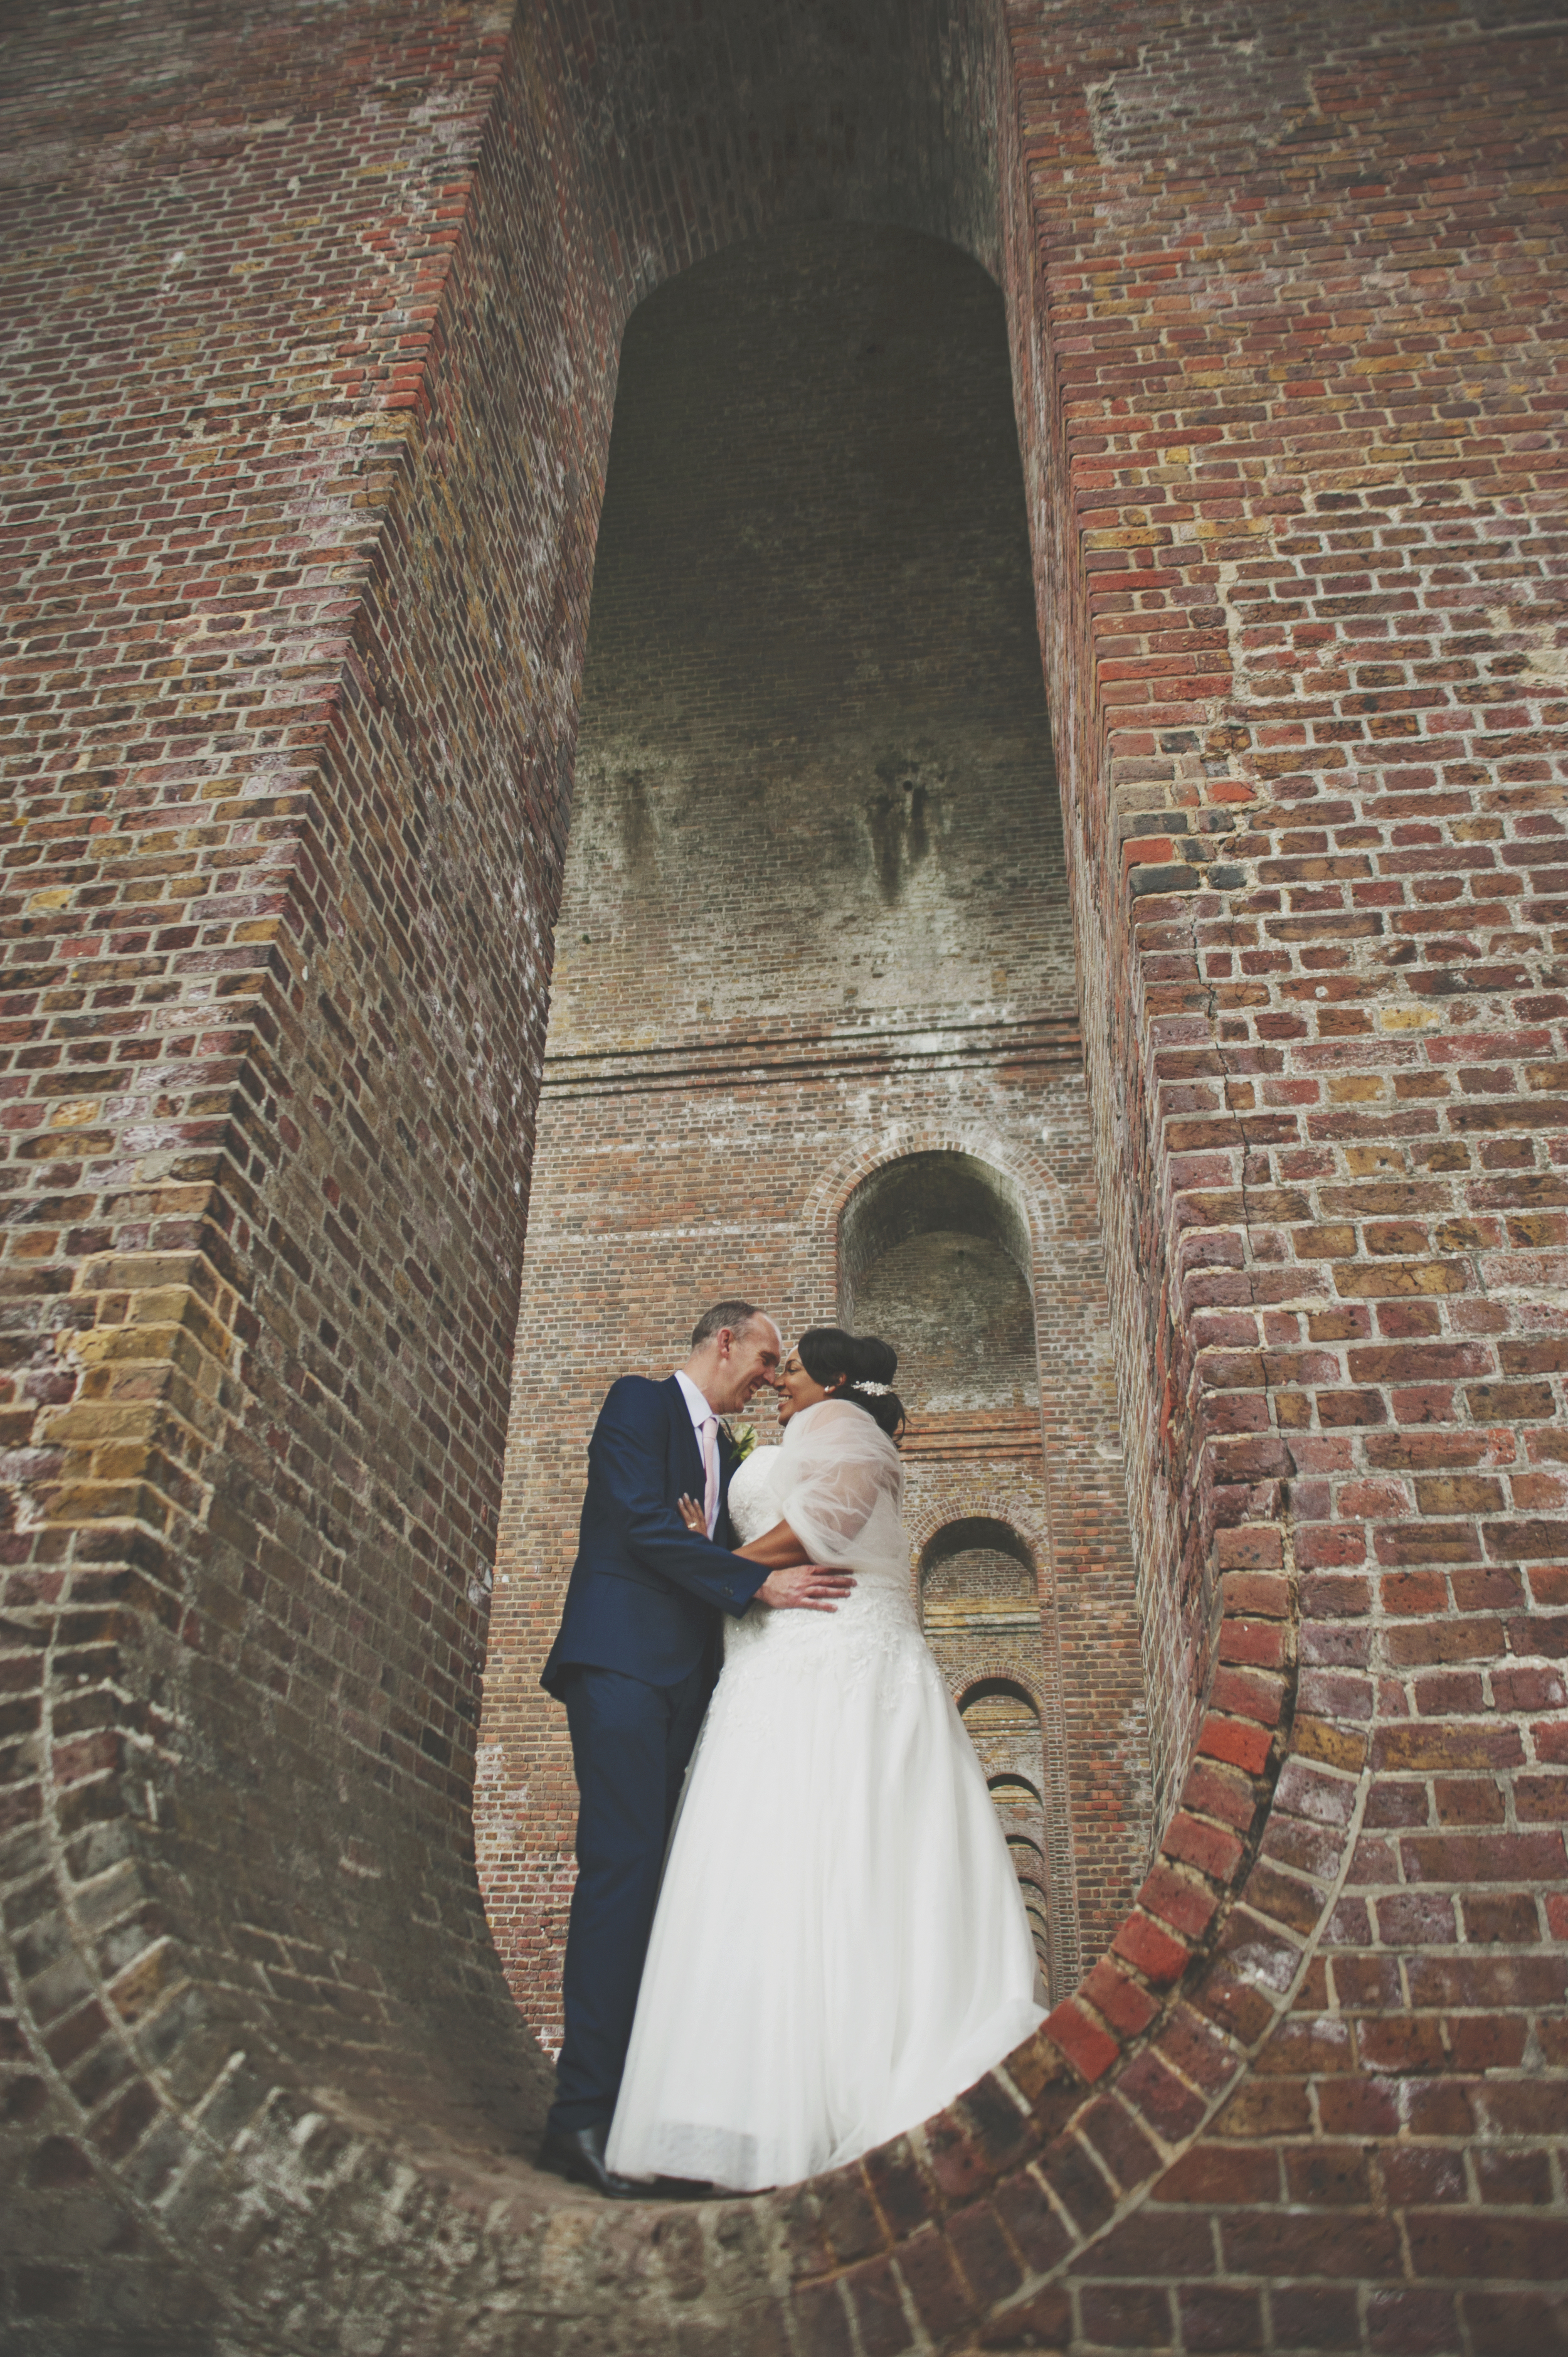 Three Flowers Photography Essex Viaduct Bride and Groom